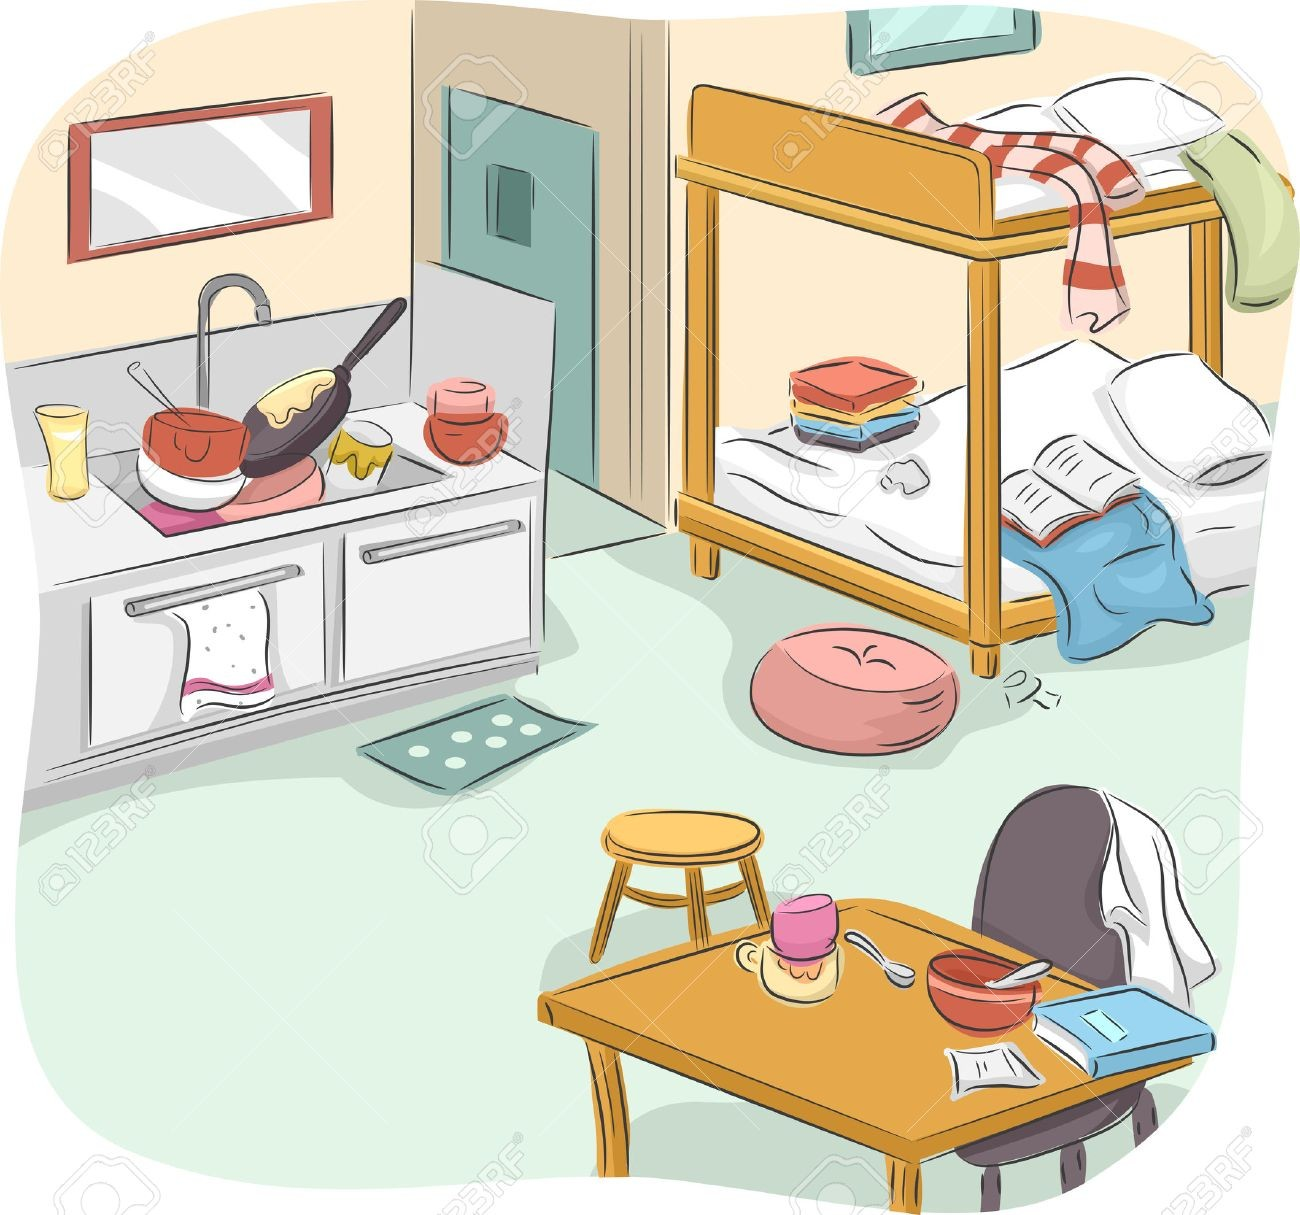 On Clipart Messy House 36815868 Illustration Of A Studio Type.